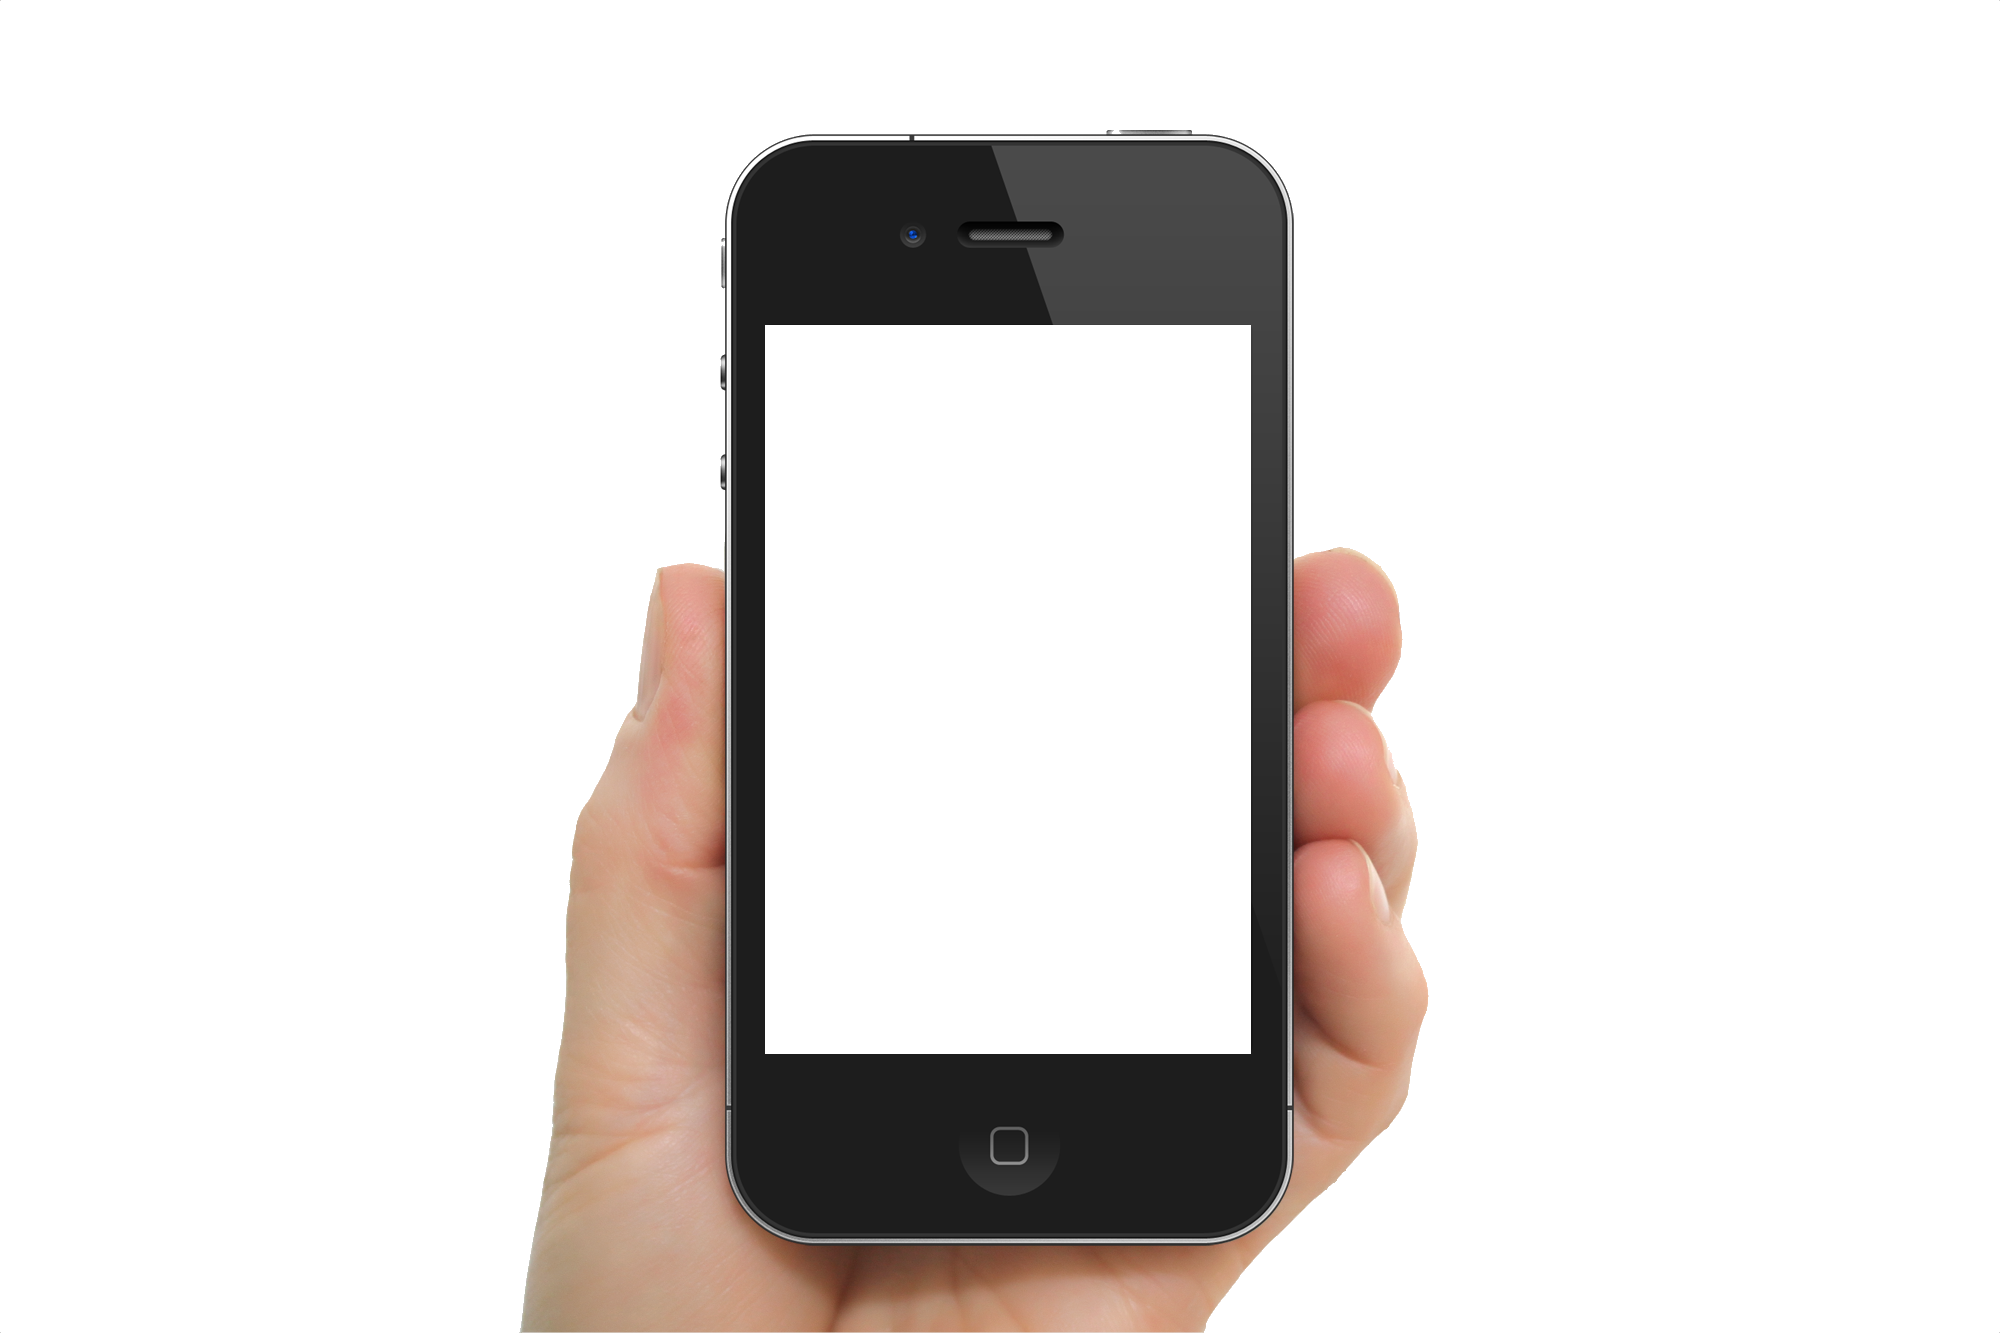 Black Iphone in hand transparent PNG image